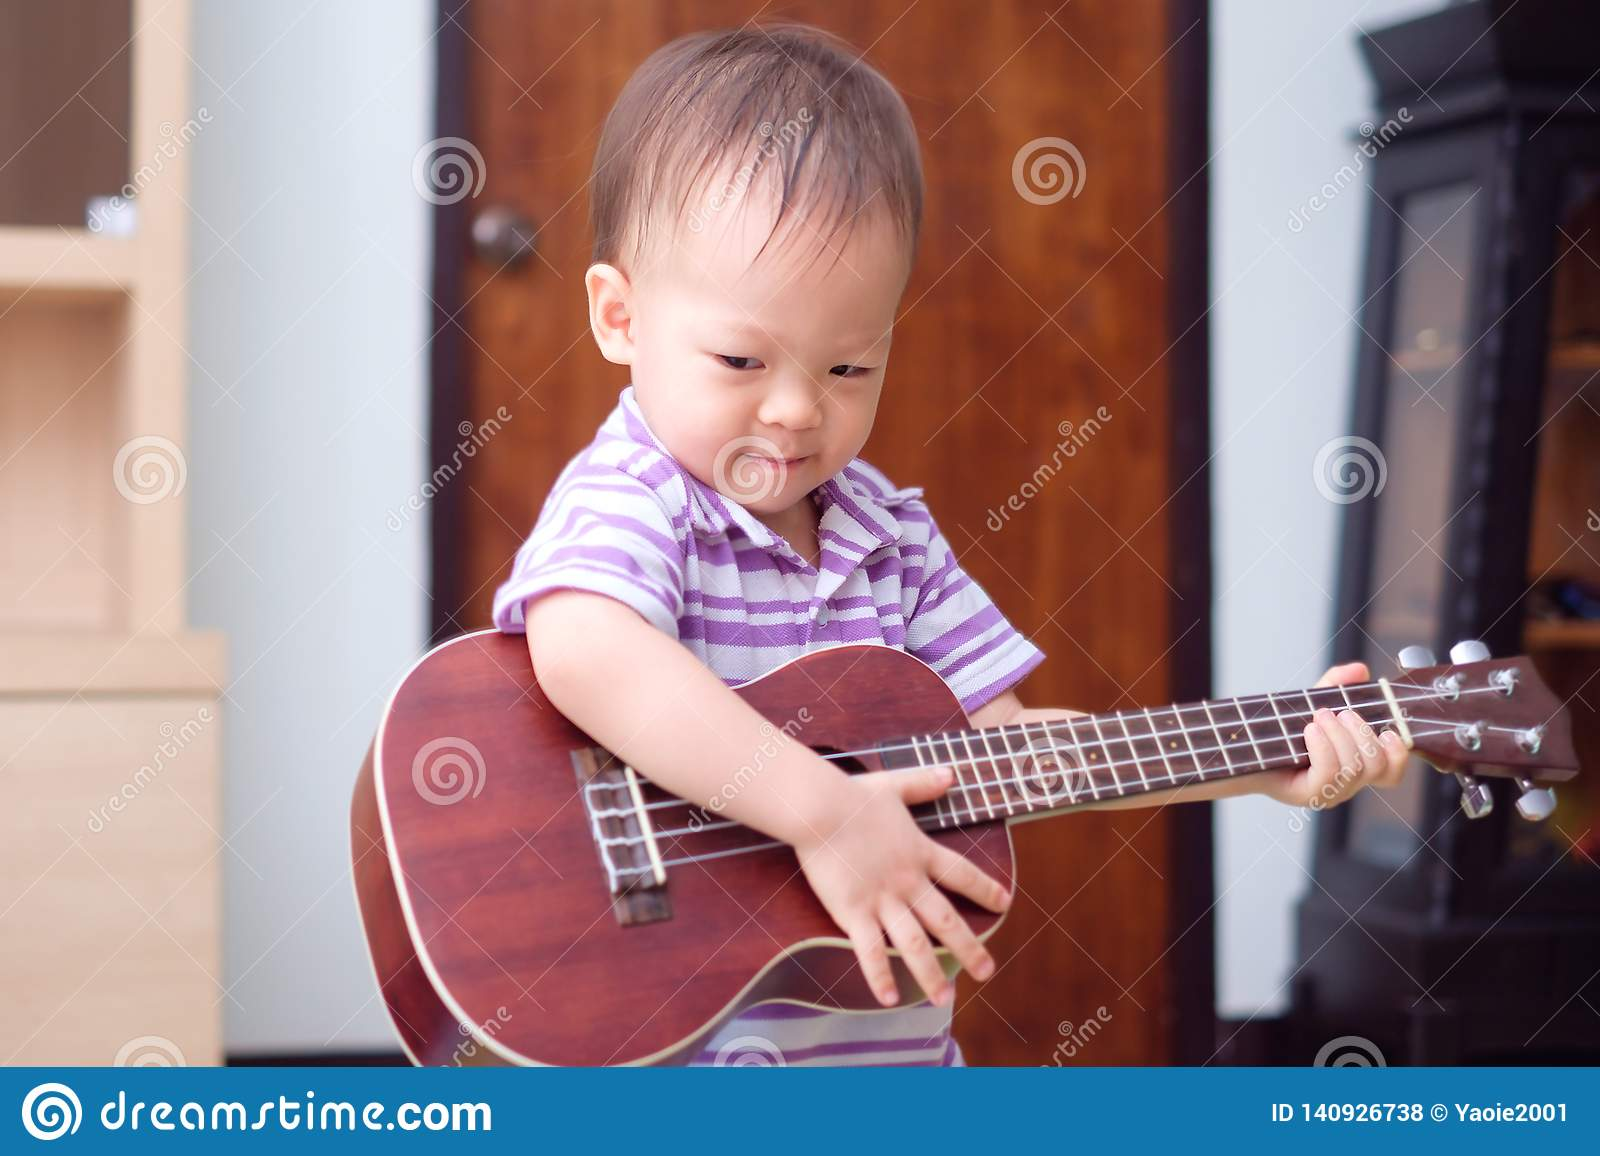 Asian 18 months / 1 year old baby boy child hold & play Hawaiian guitar or ukulele